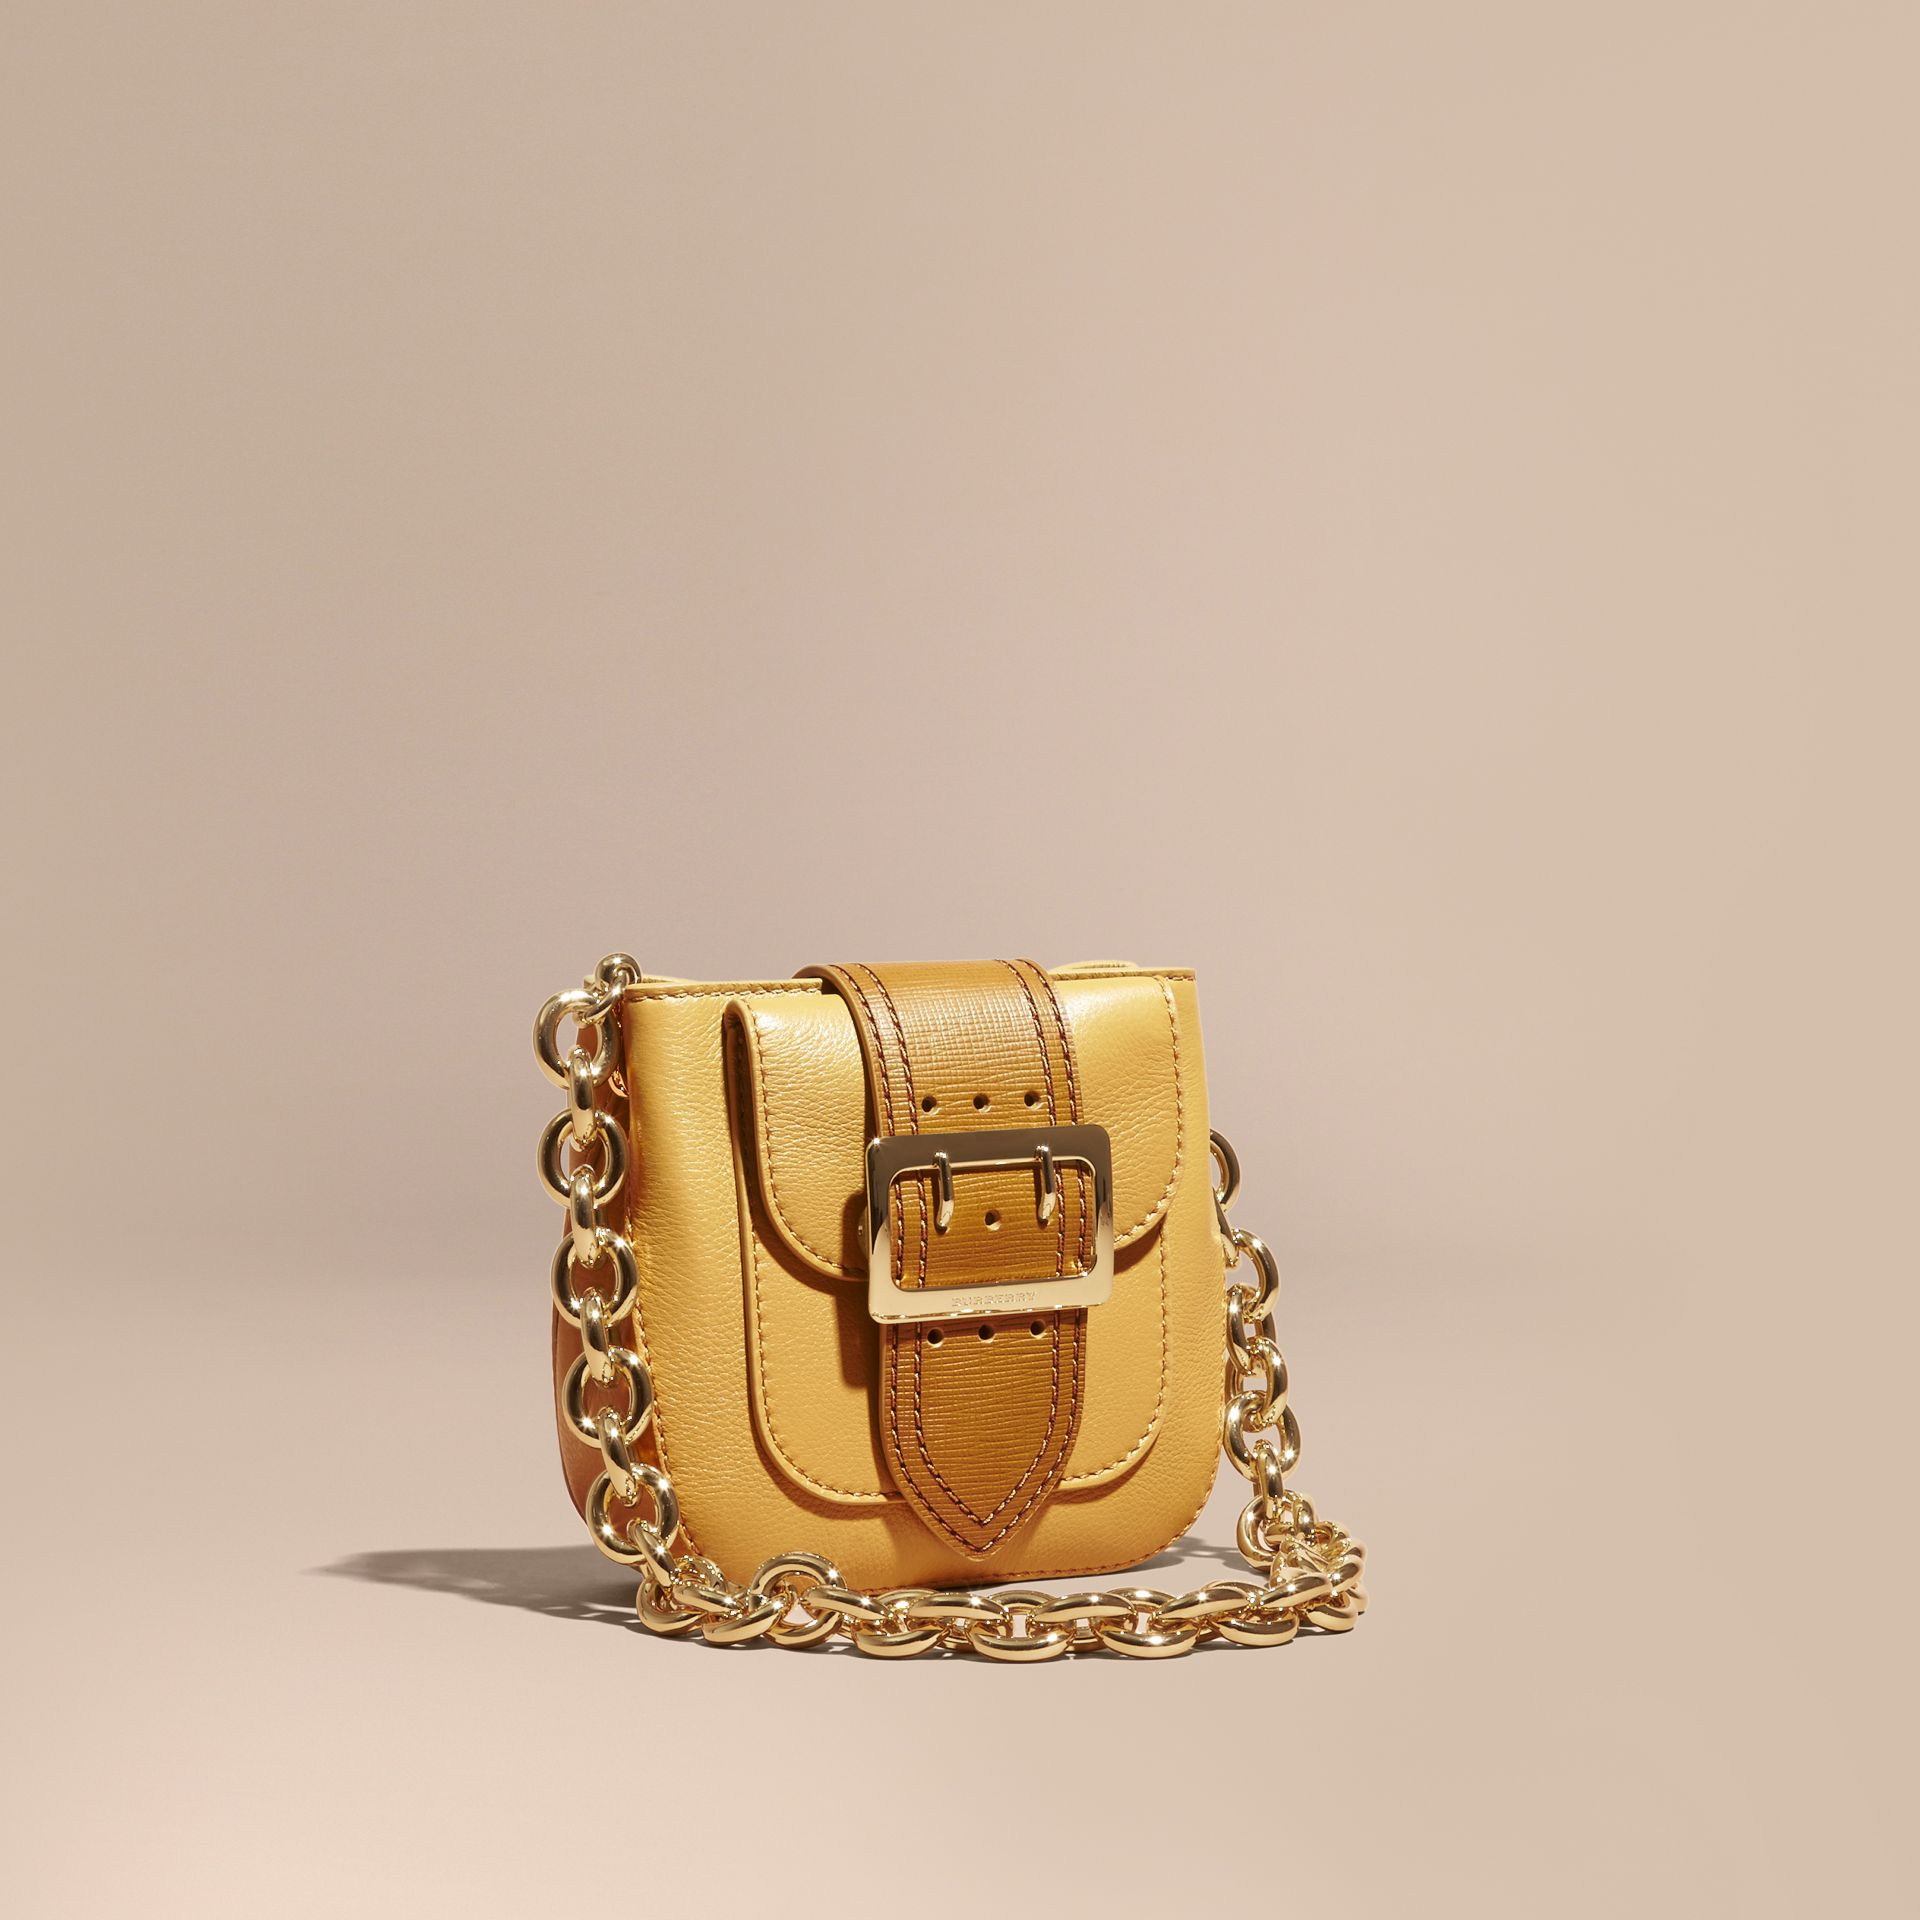 Ochre yellow The Small Square Buckle Bag in Leather - gallery image 1